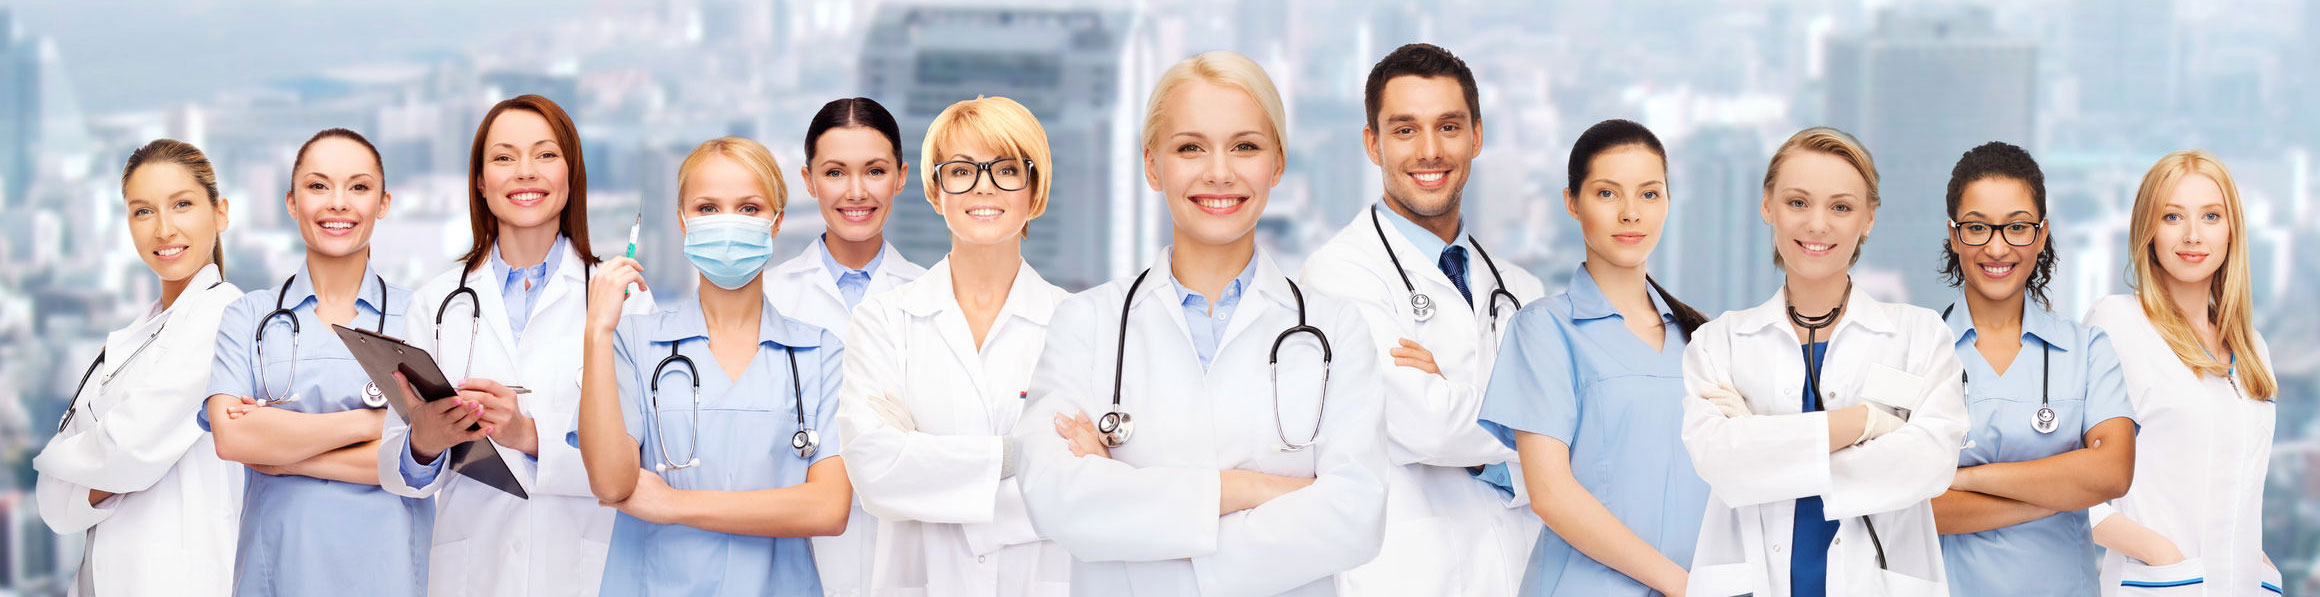 J1 Waiver and H1B Visa Physician Jobs